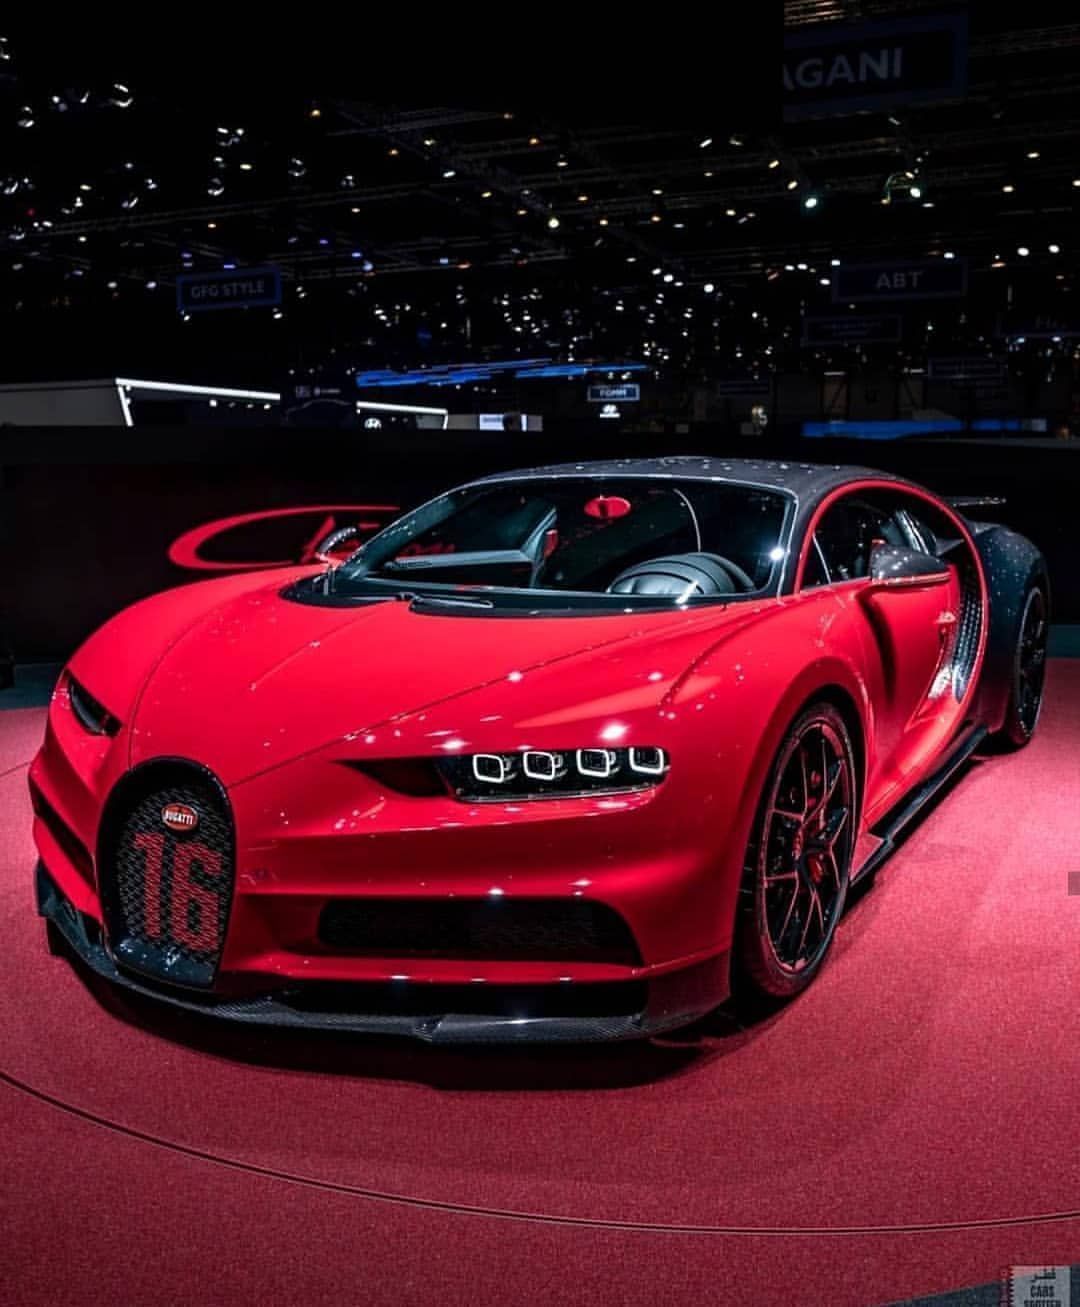 Dream Supercar What Do You Think Click To Be Inspired Supercar Cars Luxury Luxurycars Coolcars Dreamcars Exoti Super Cars Luxury Cars Sports Cars